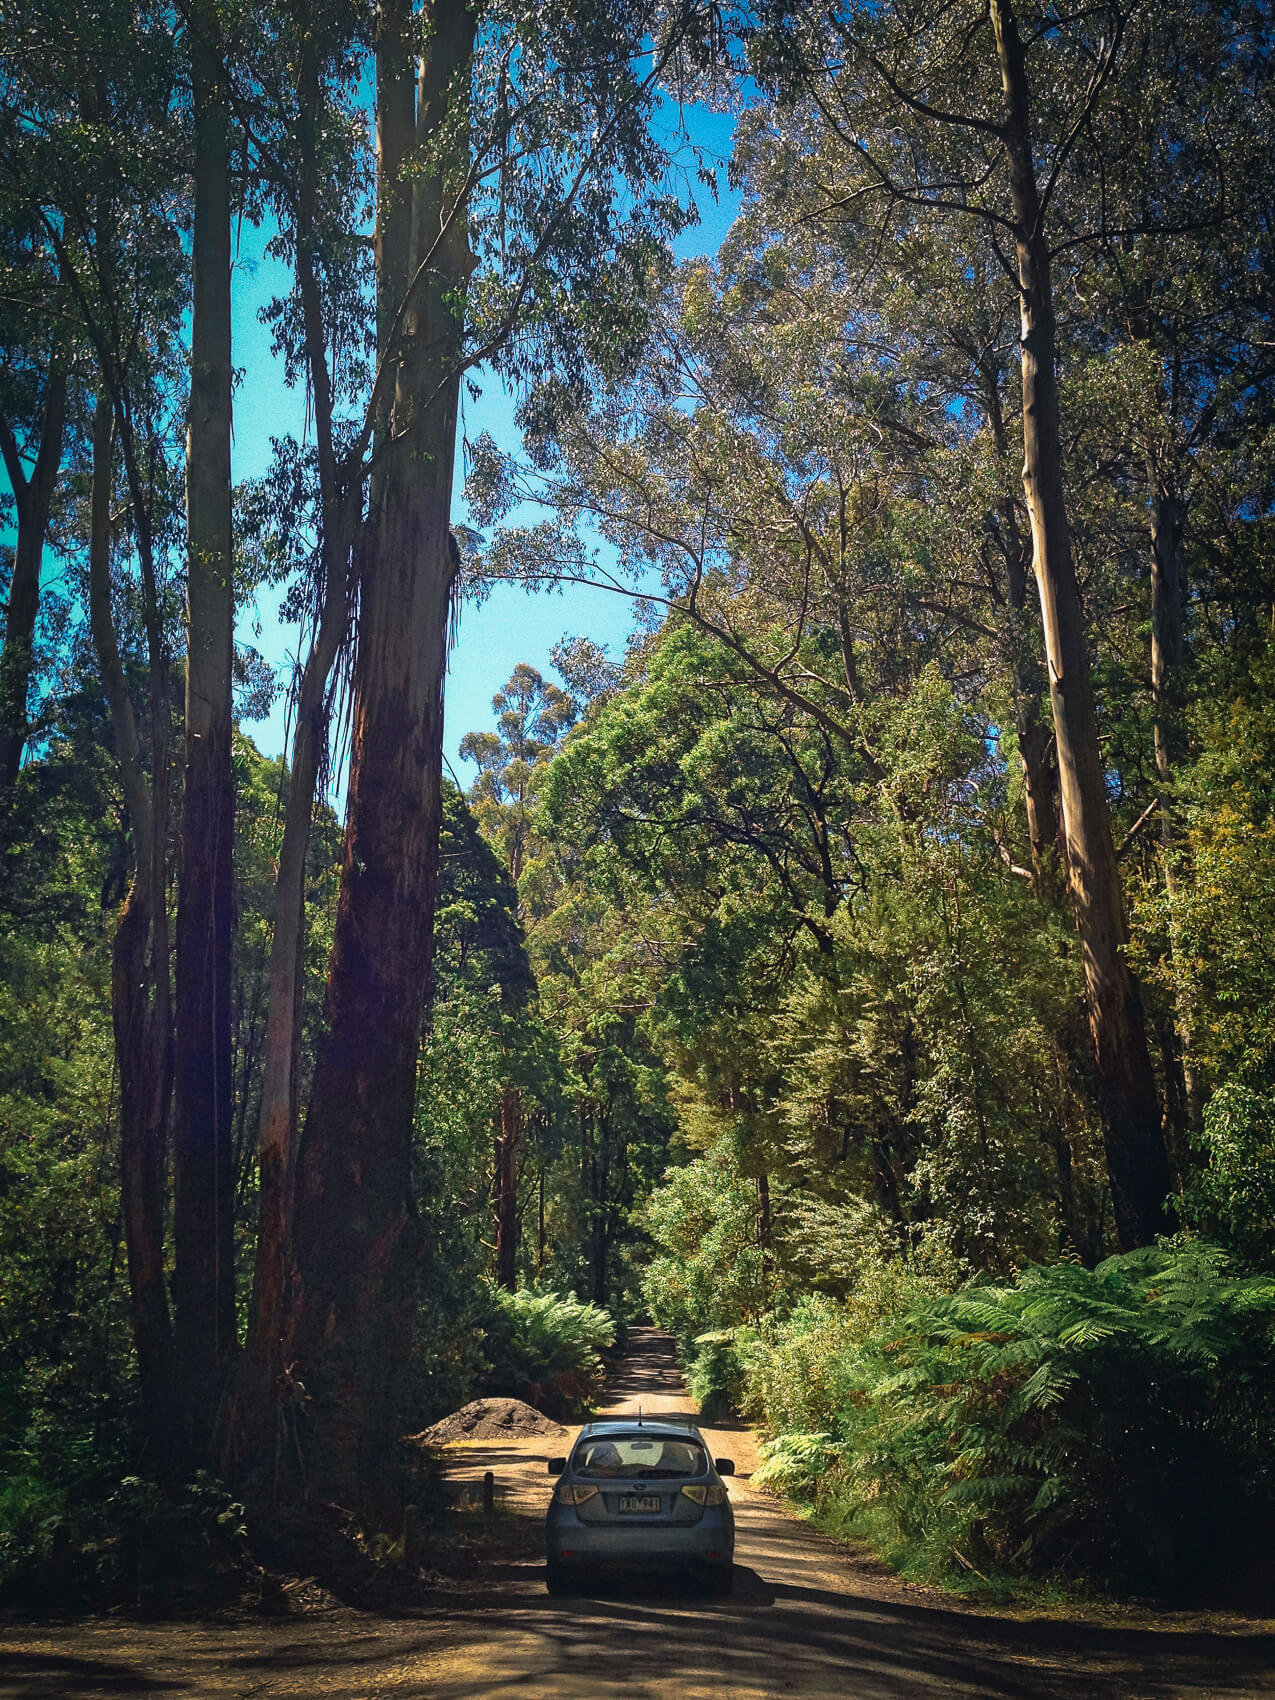 Travelling together down the road of life (Otways National Park, Victoria, Australia)